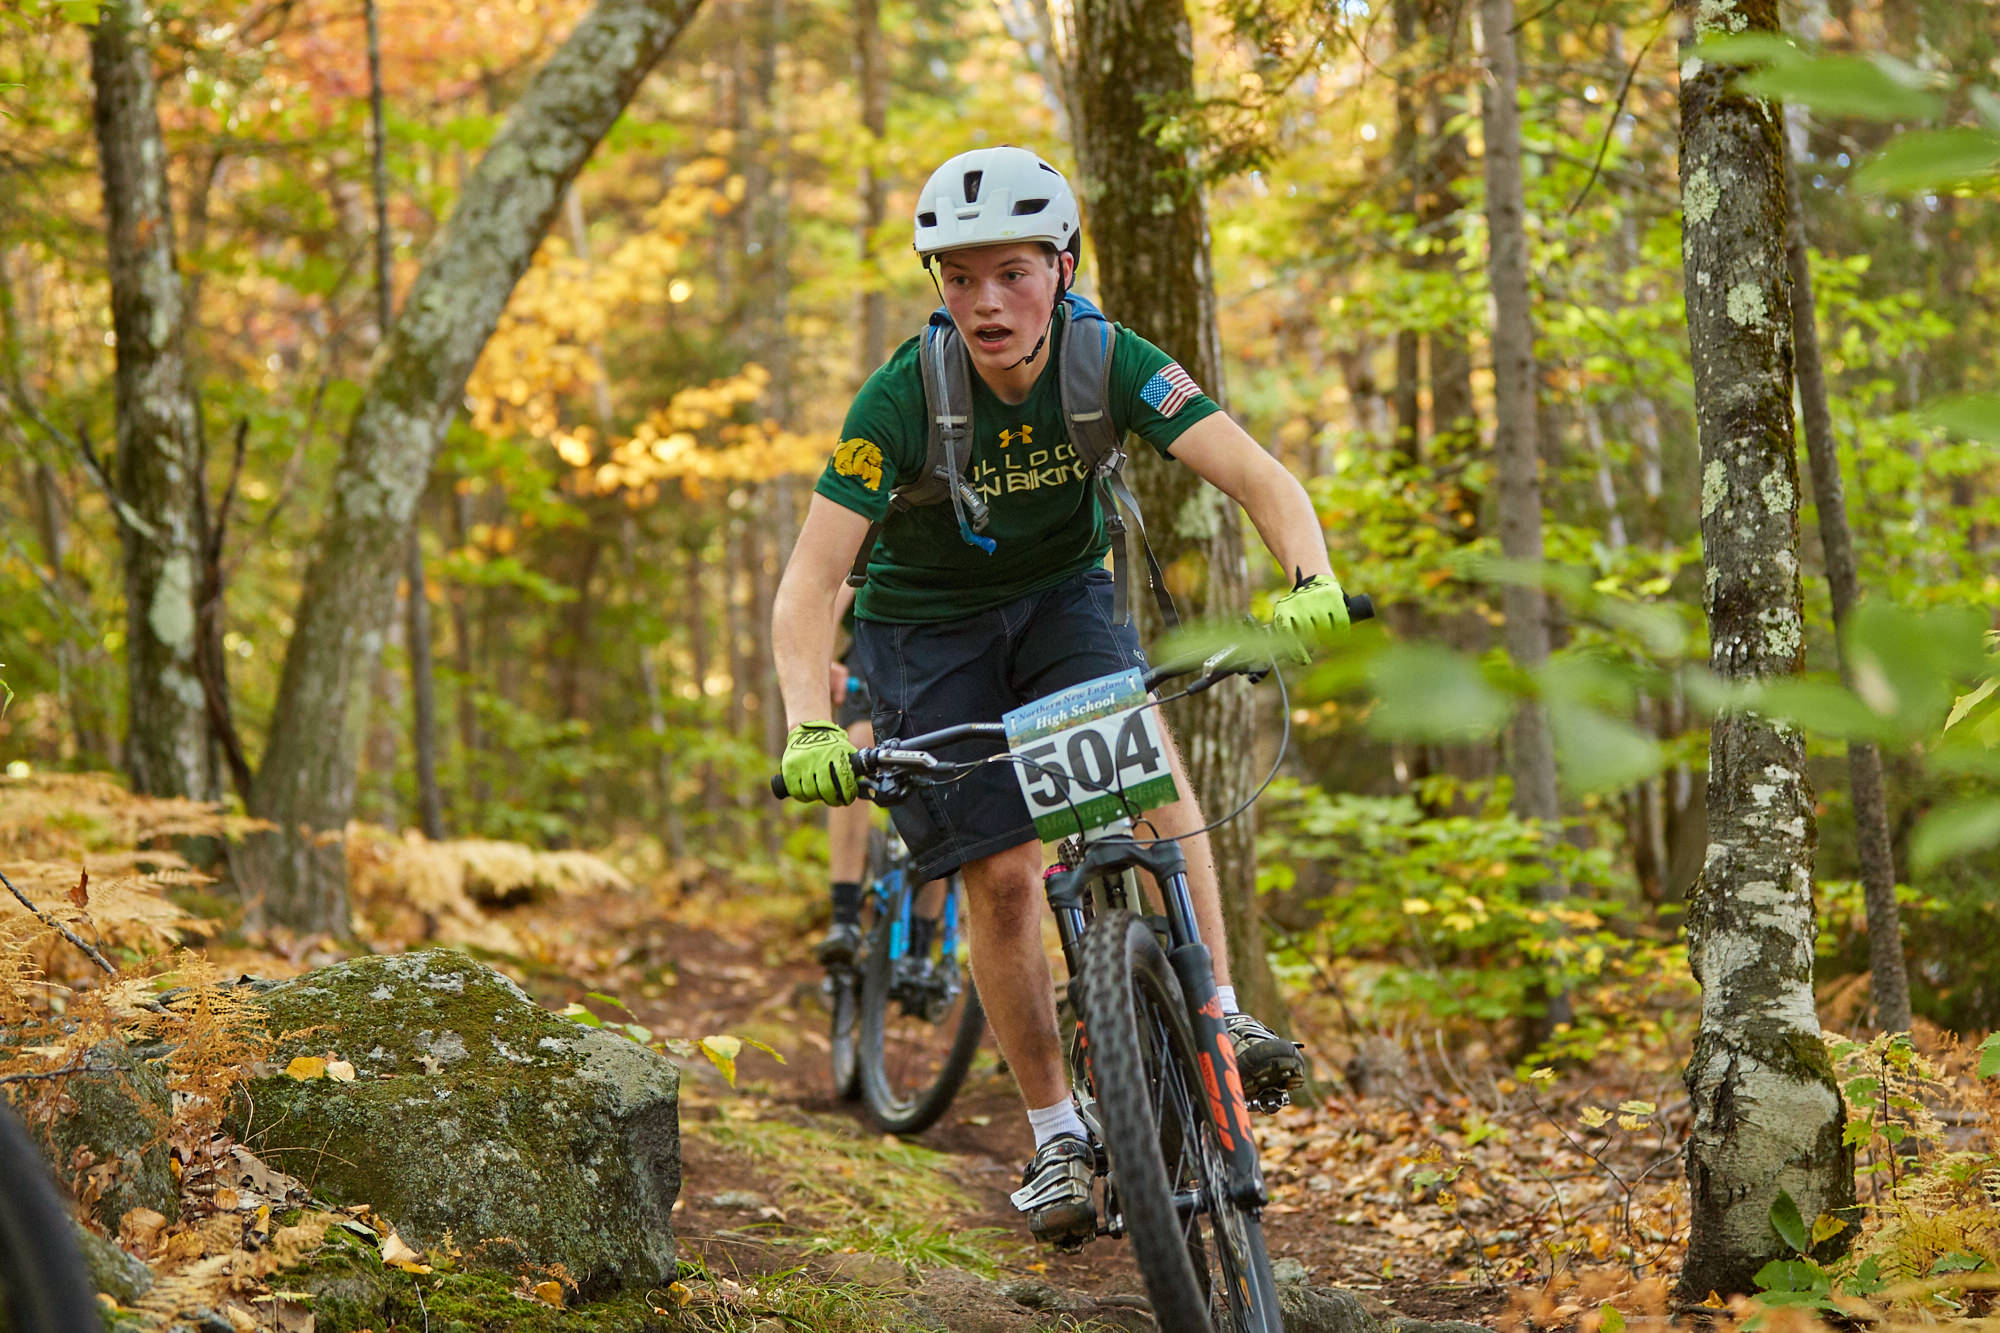 Mountain Biking at Dublin School - October 12, 2016  - 51586 - 000084.jpg